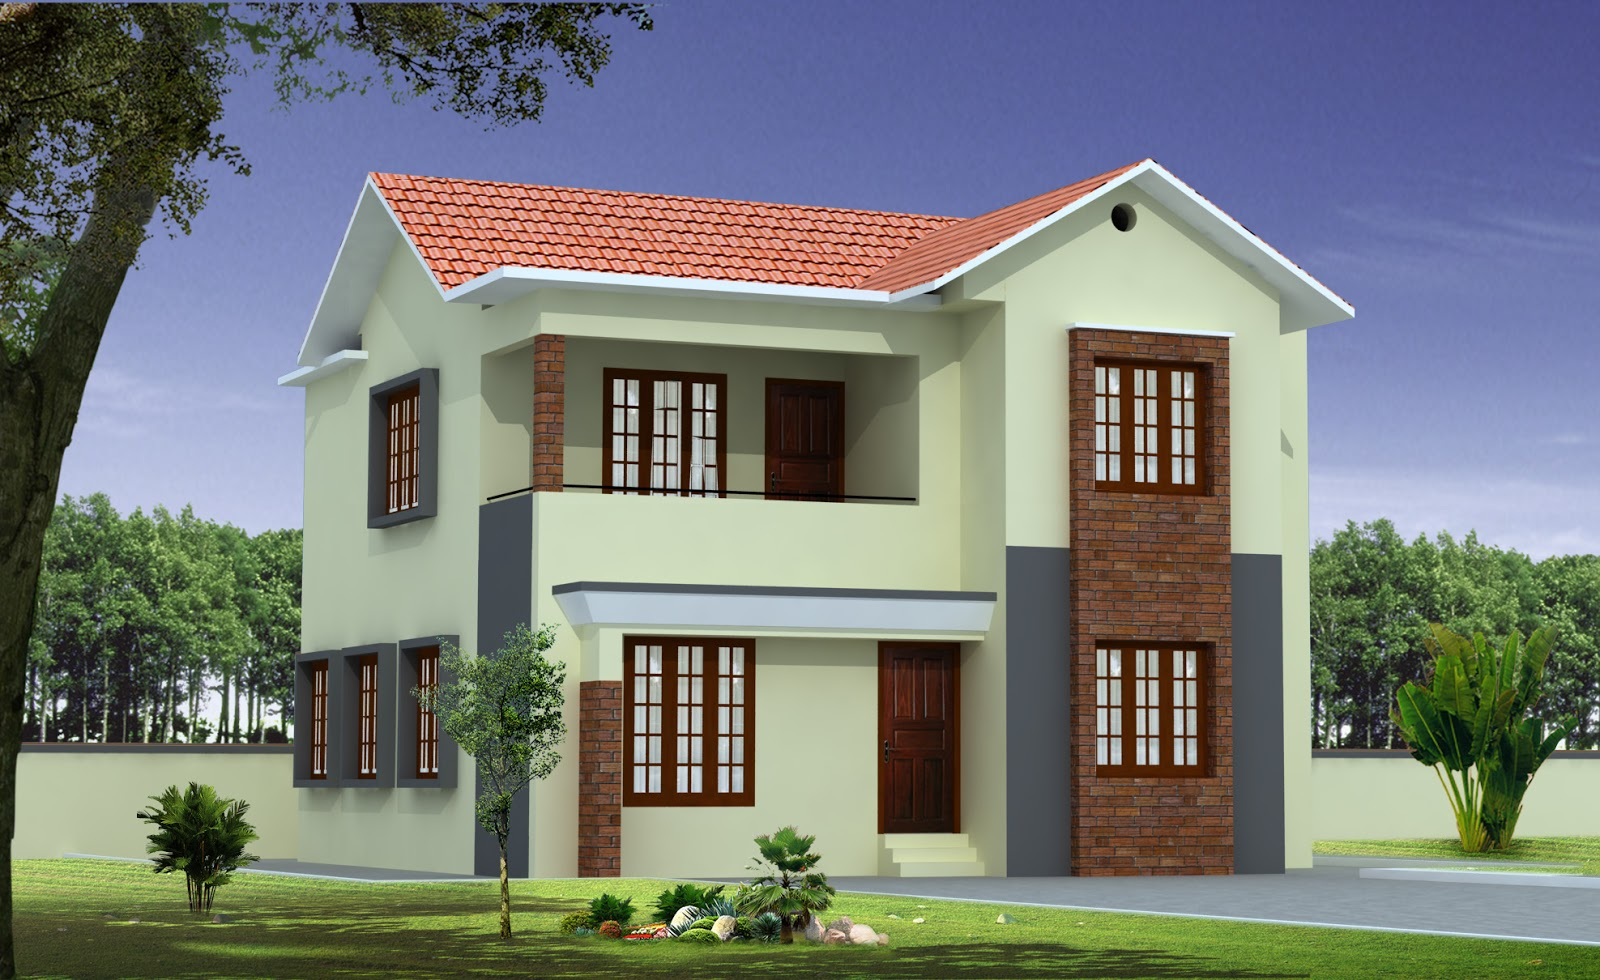 Build a building latest home designs for Designed home plans